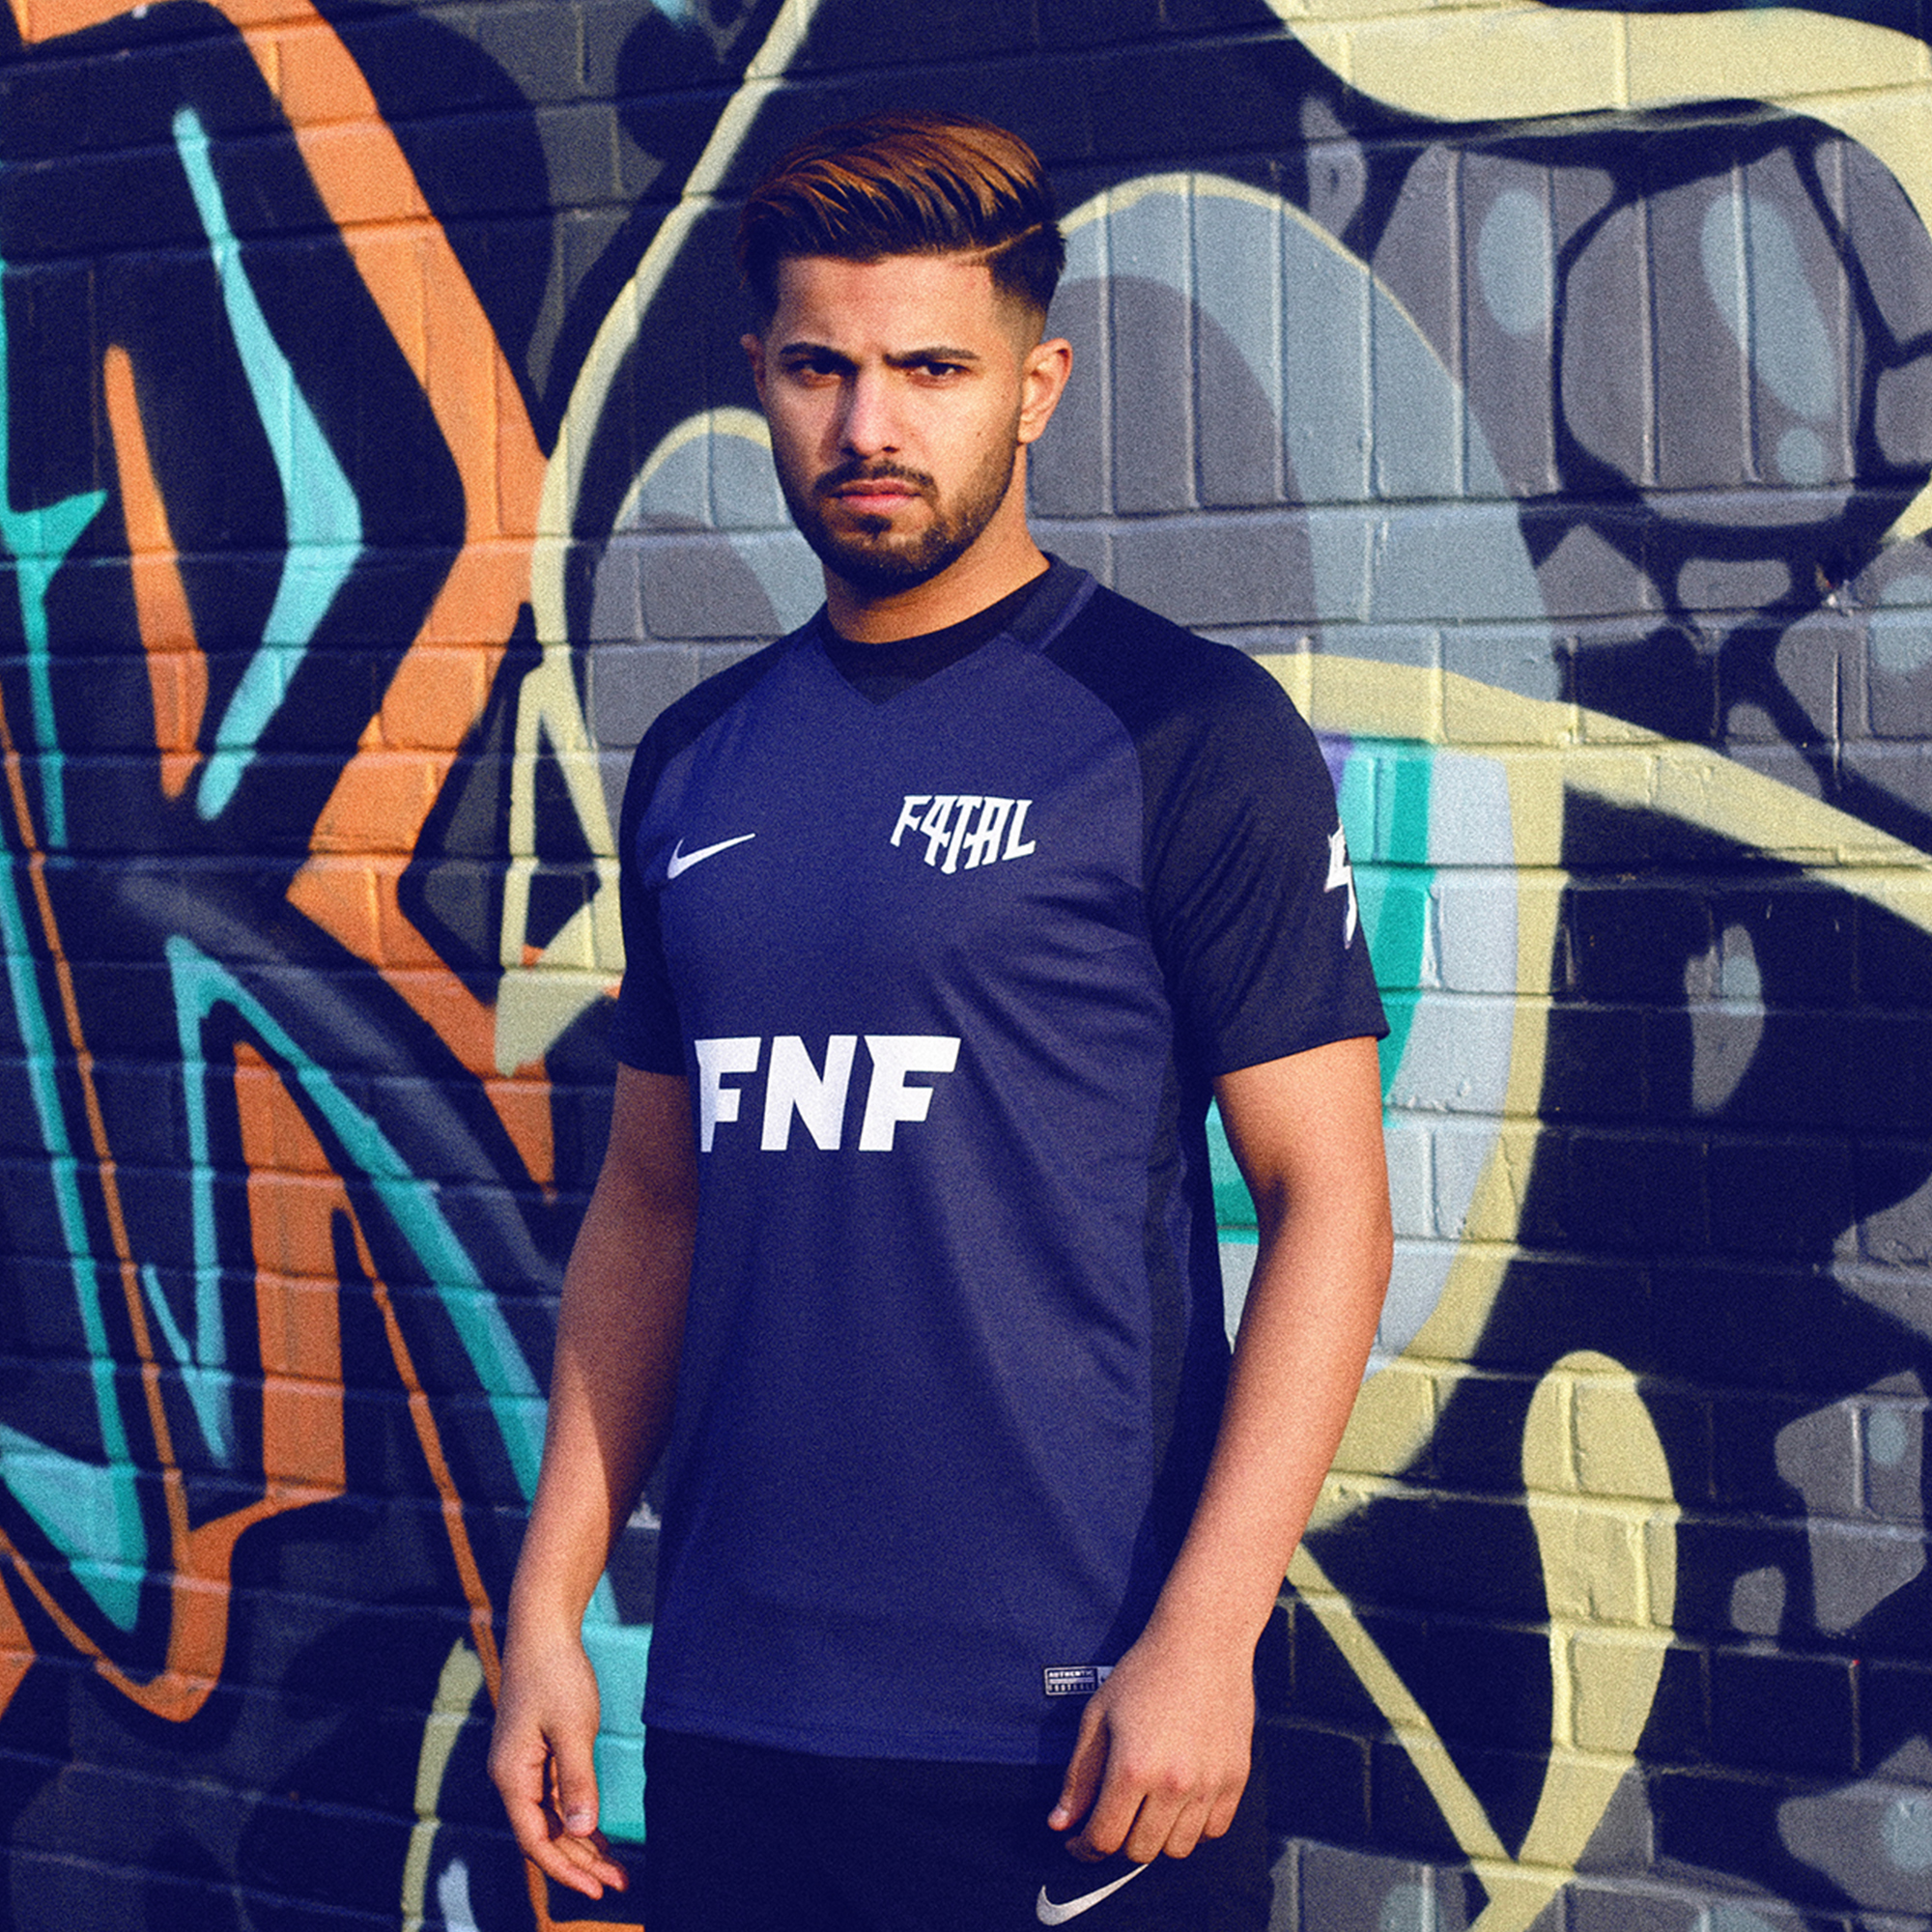 F4tal Third Kit